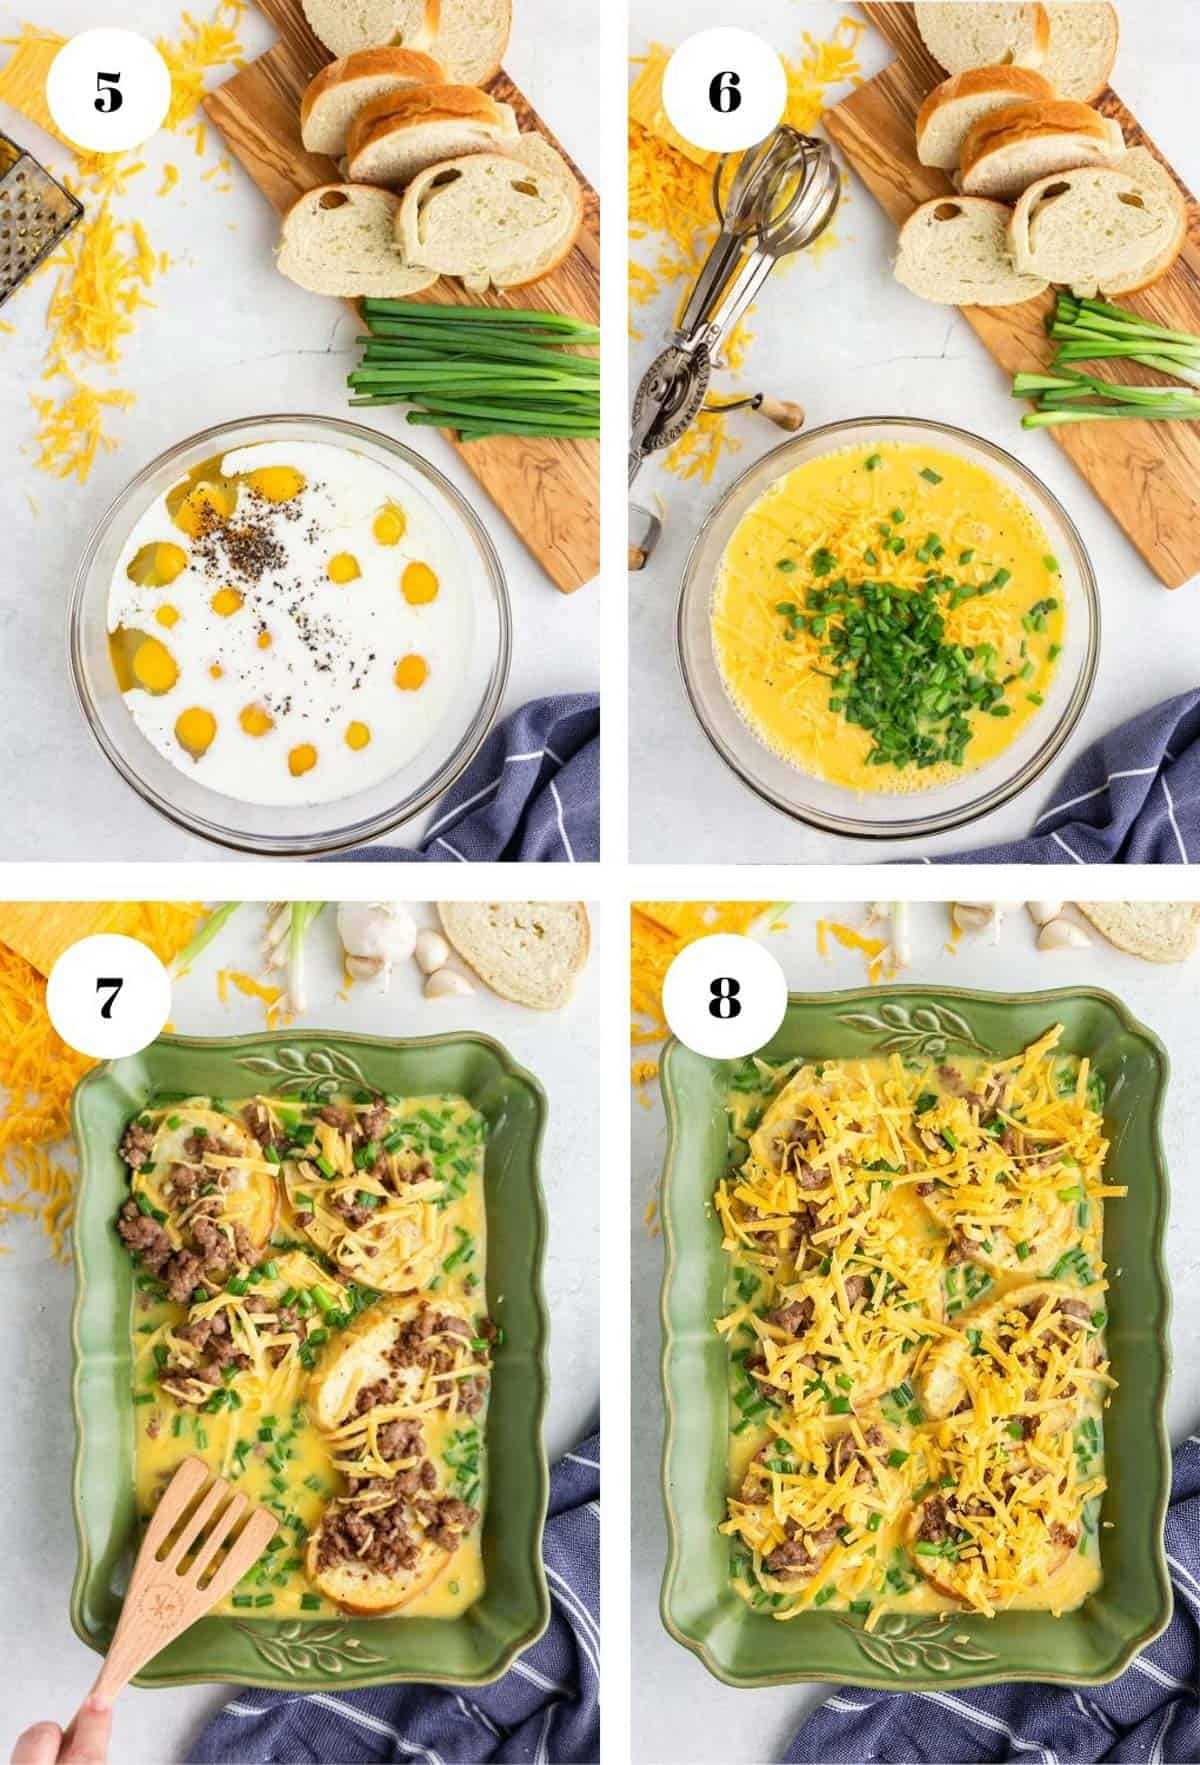 Mixing eggs and and adding to an overnight breakfast casserole.